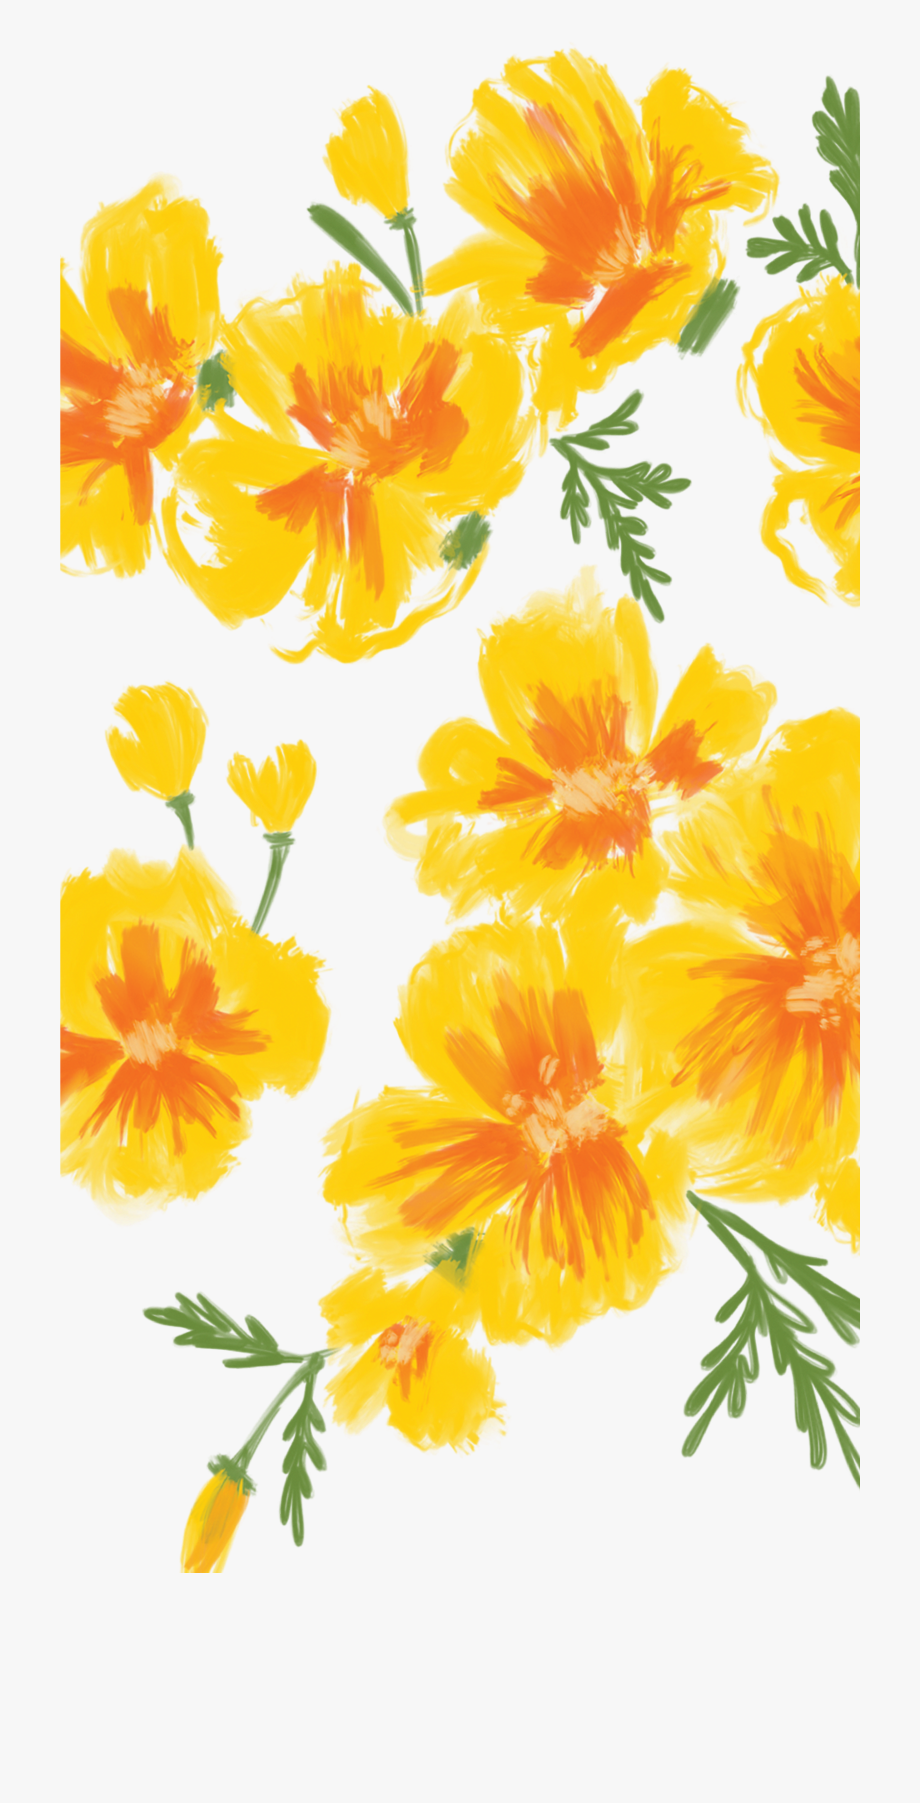 Yellow Flower Iphone Wallpapers Top Free Yellow Flower Iphone